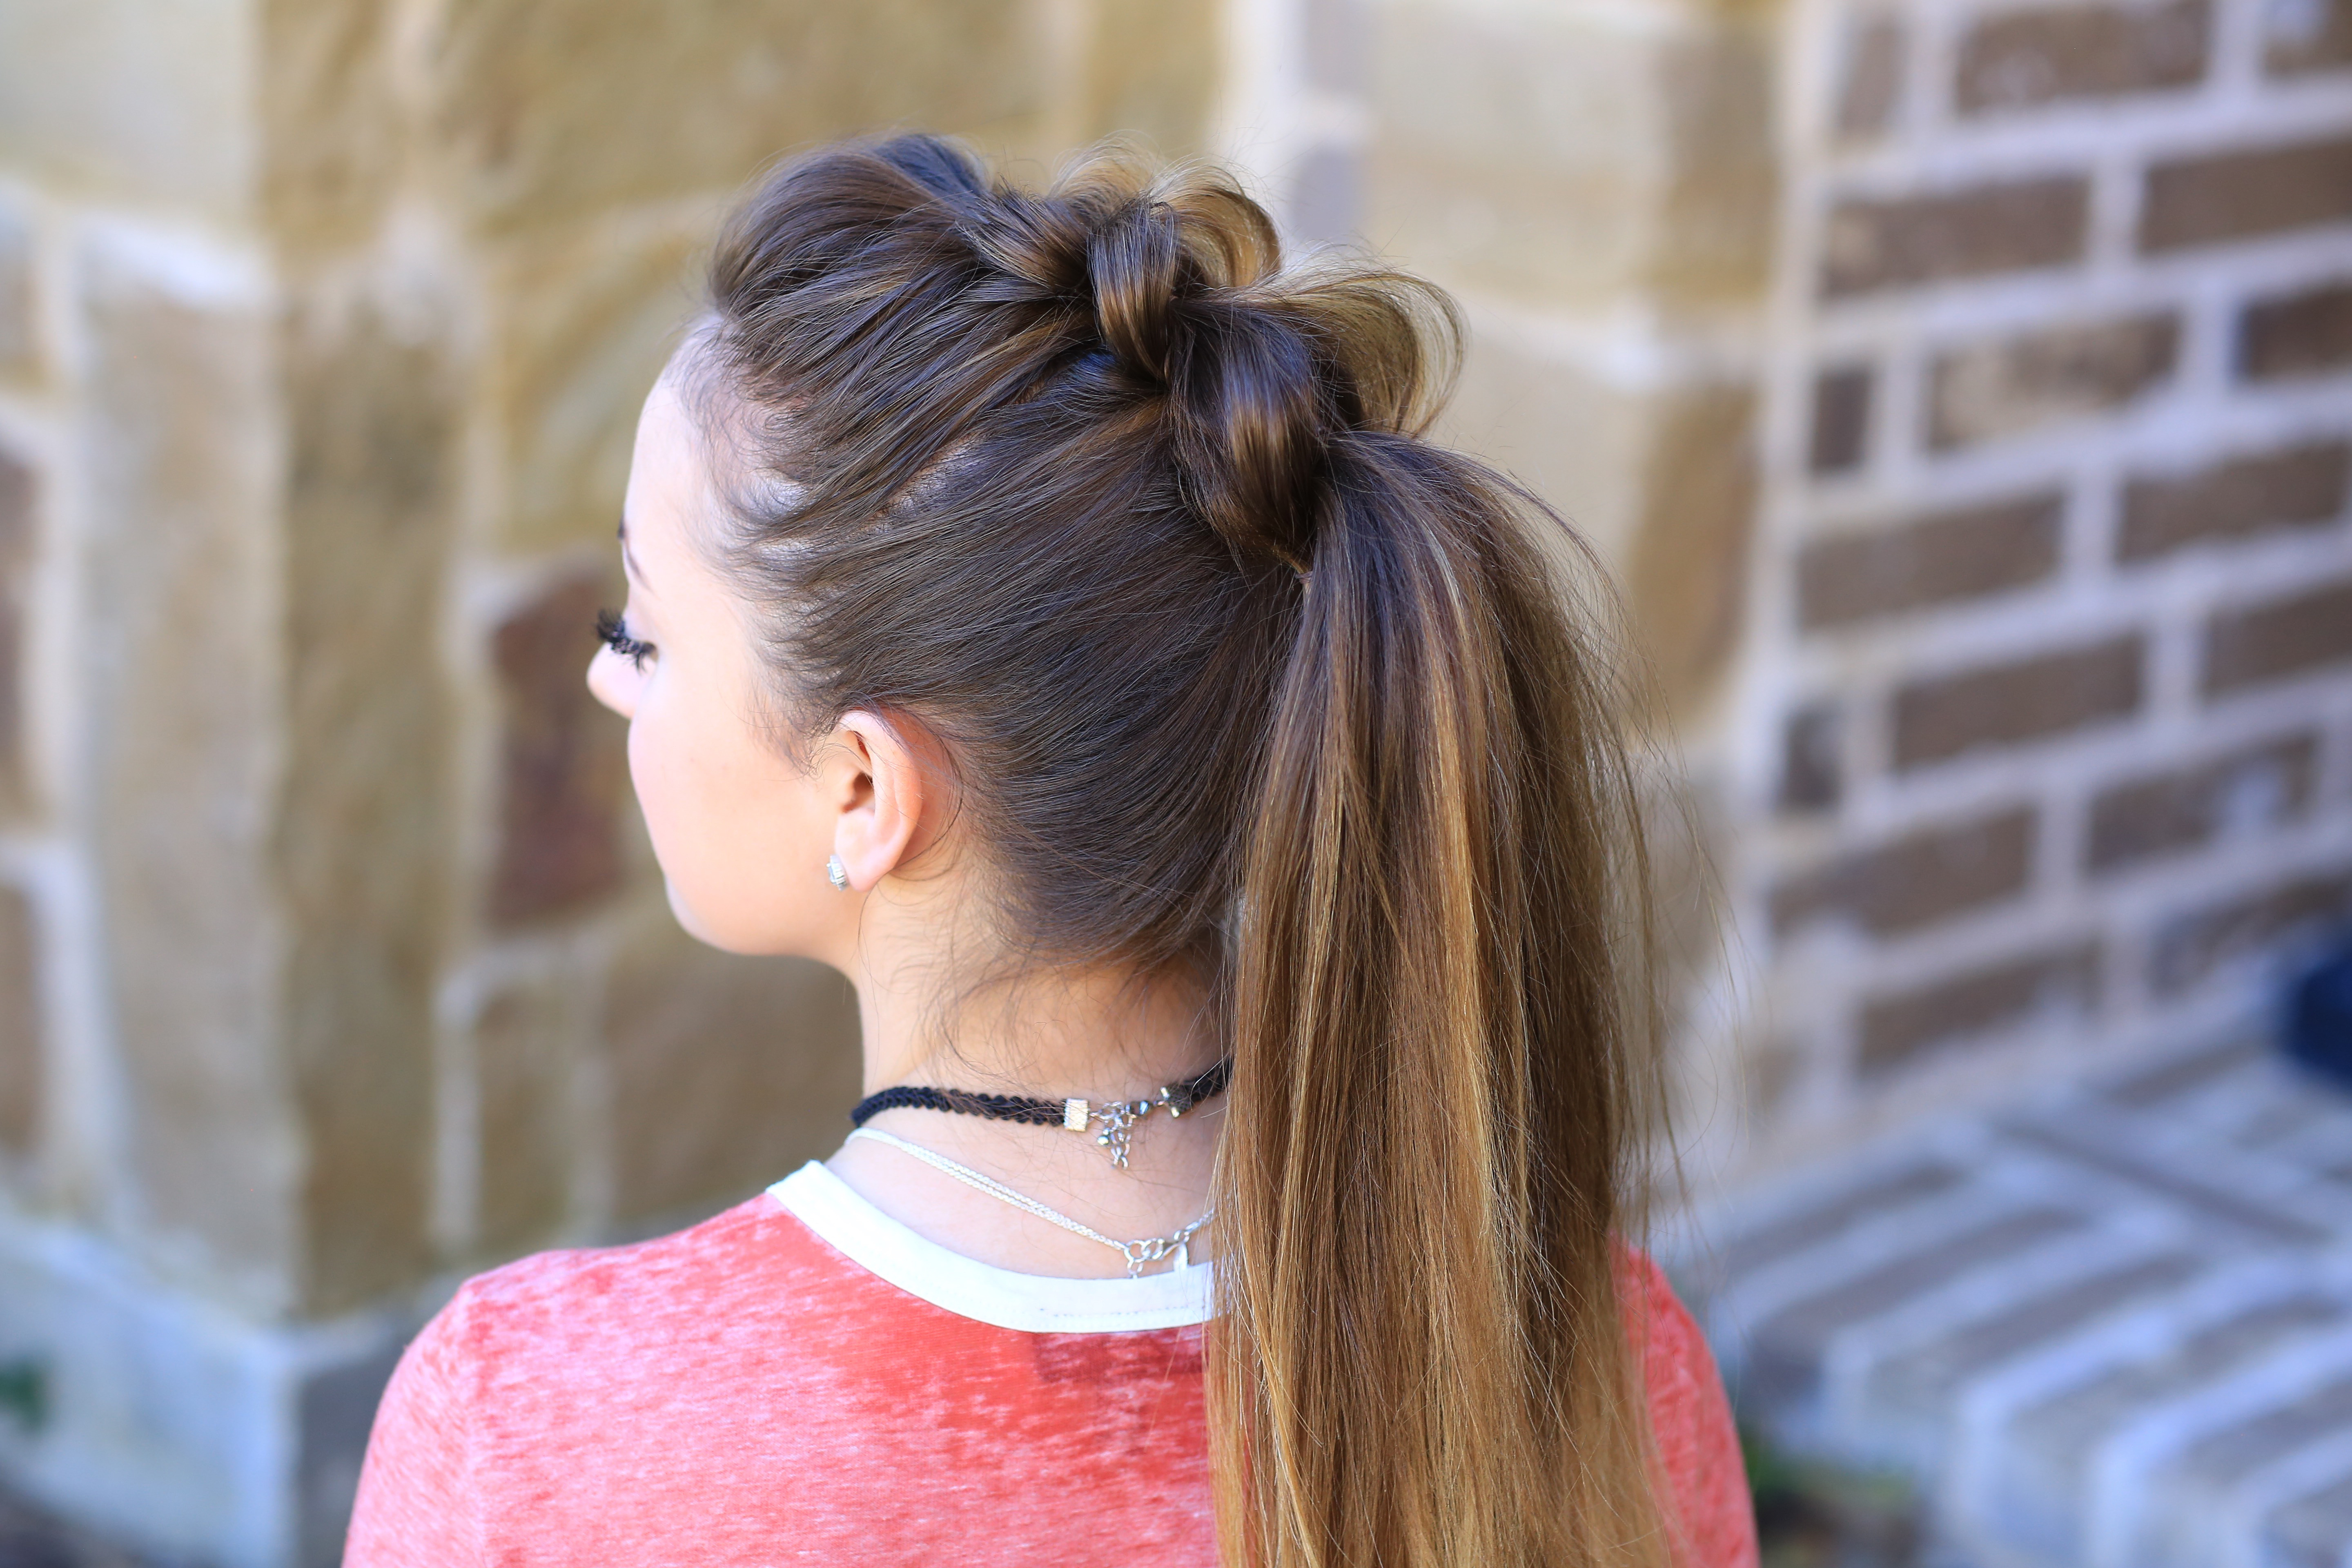 Best ideas about Girls Haircuts . Save or Pin Pull Thru Ponytail Now.